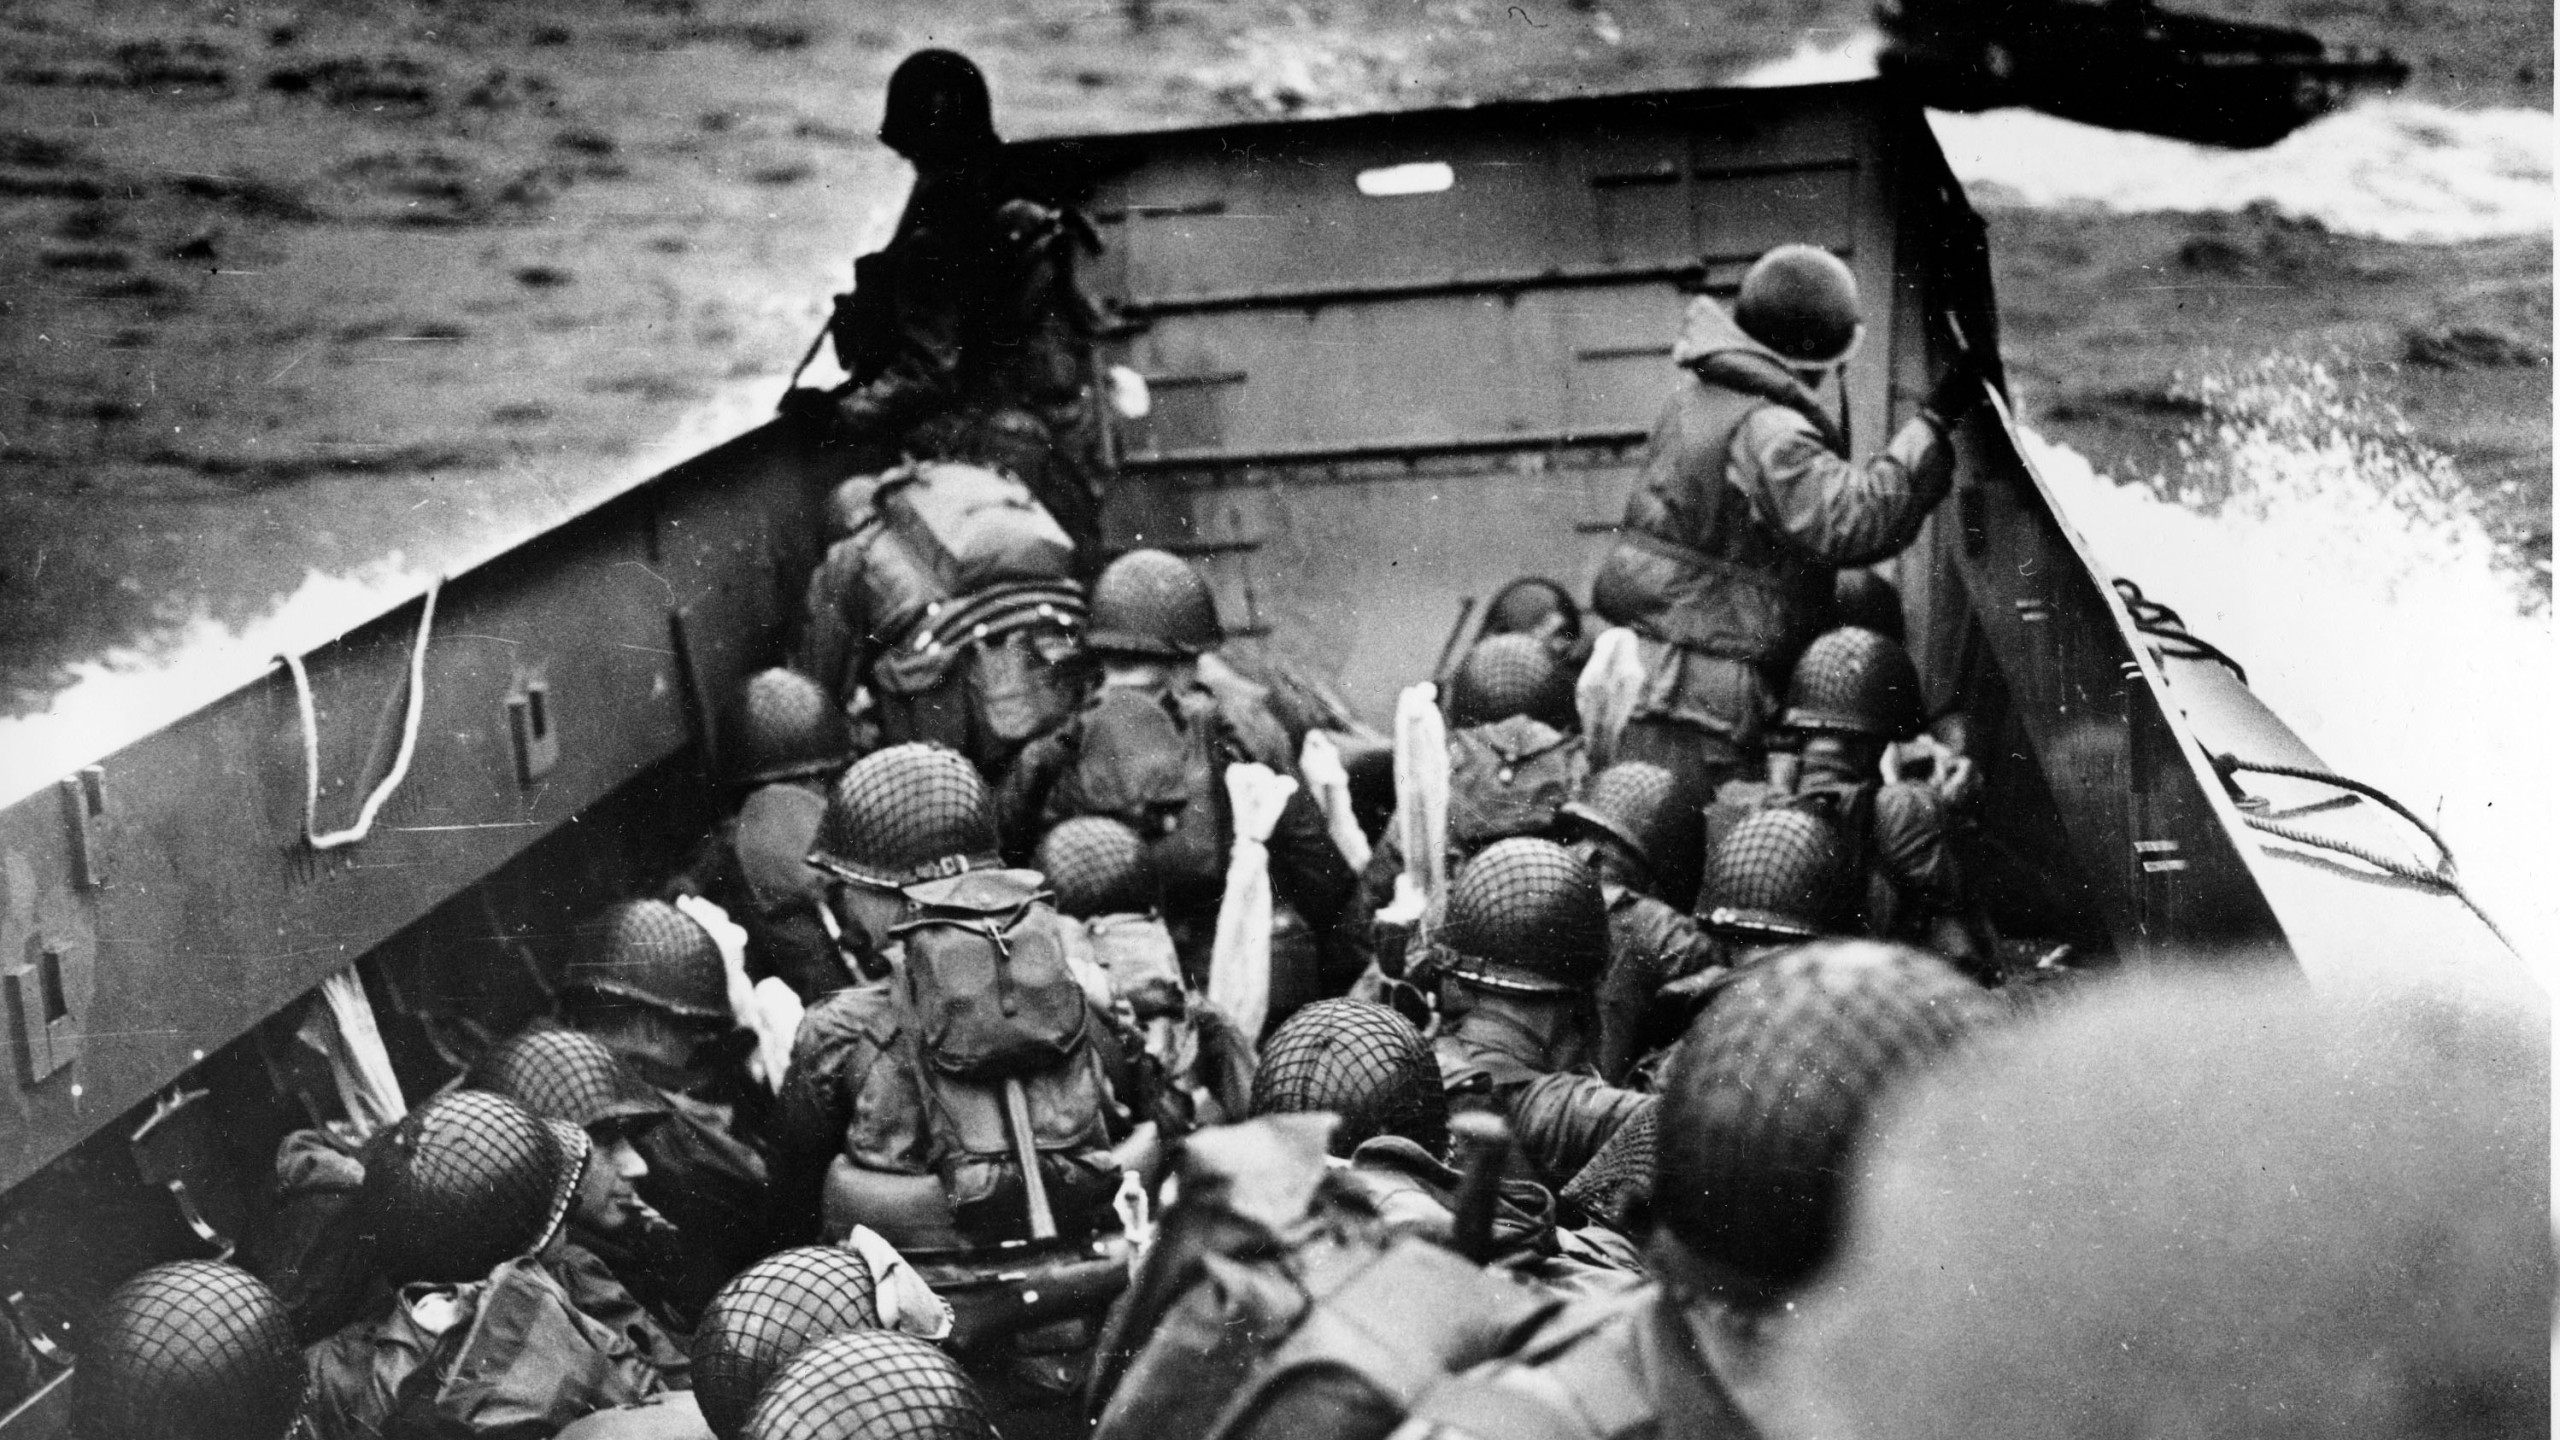 WWII D-DAY NORMANDY INVASION_380952